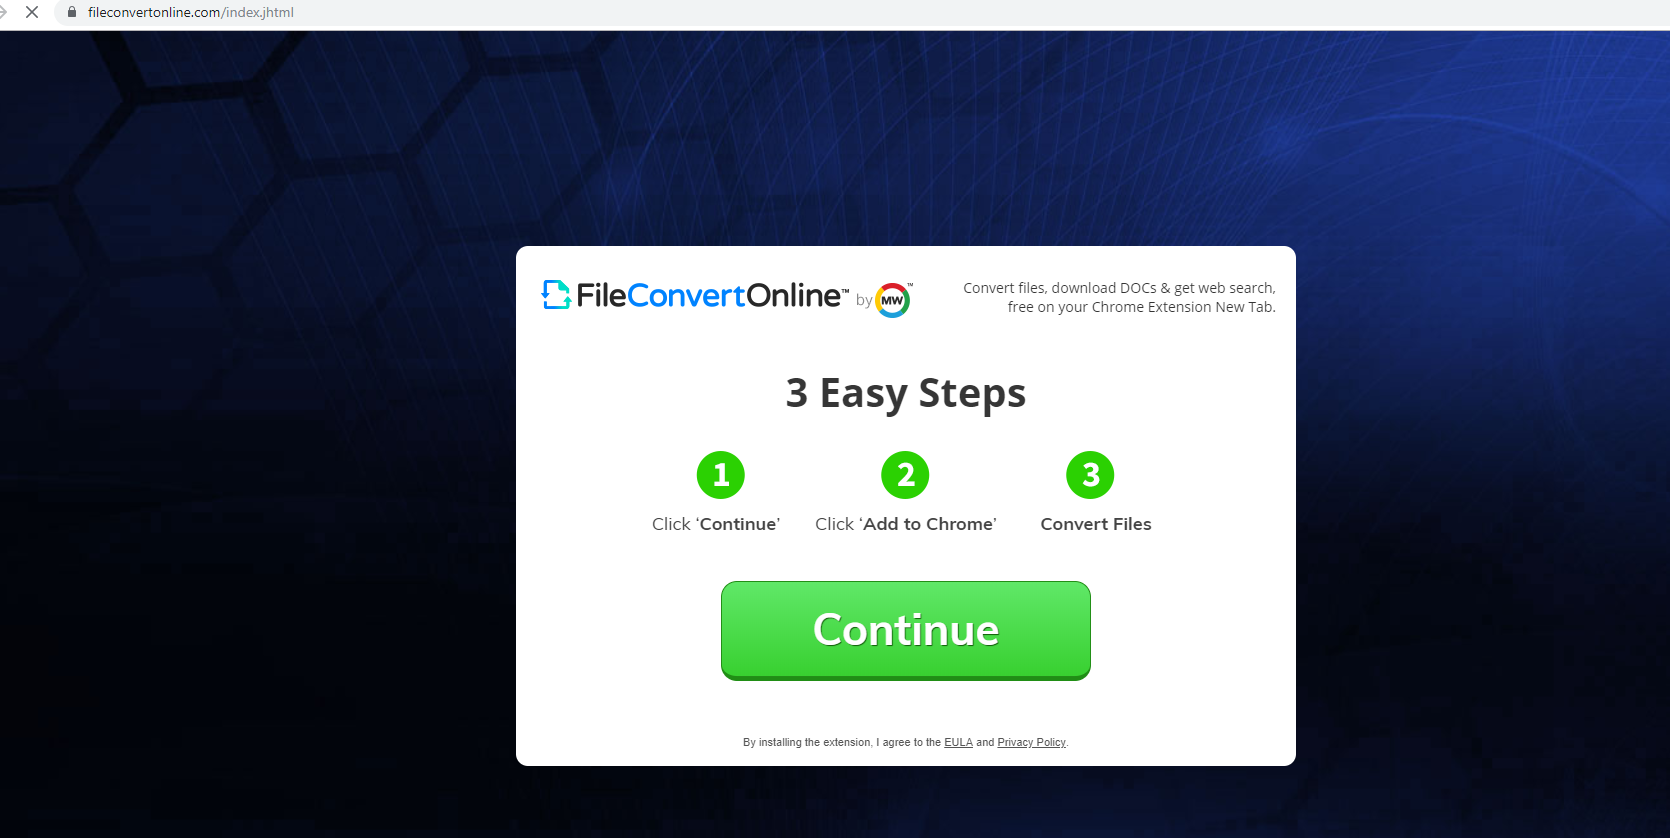 FileConvertOnline.png